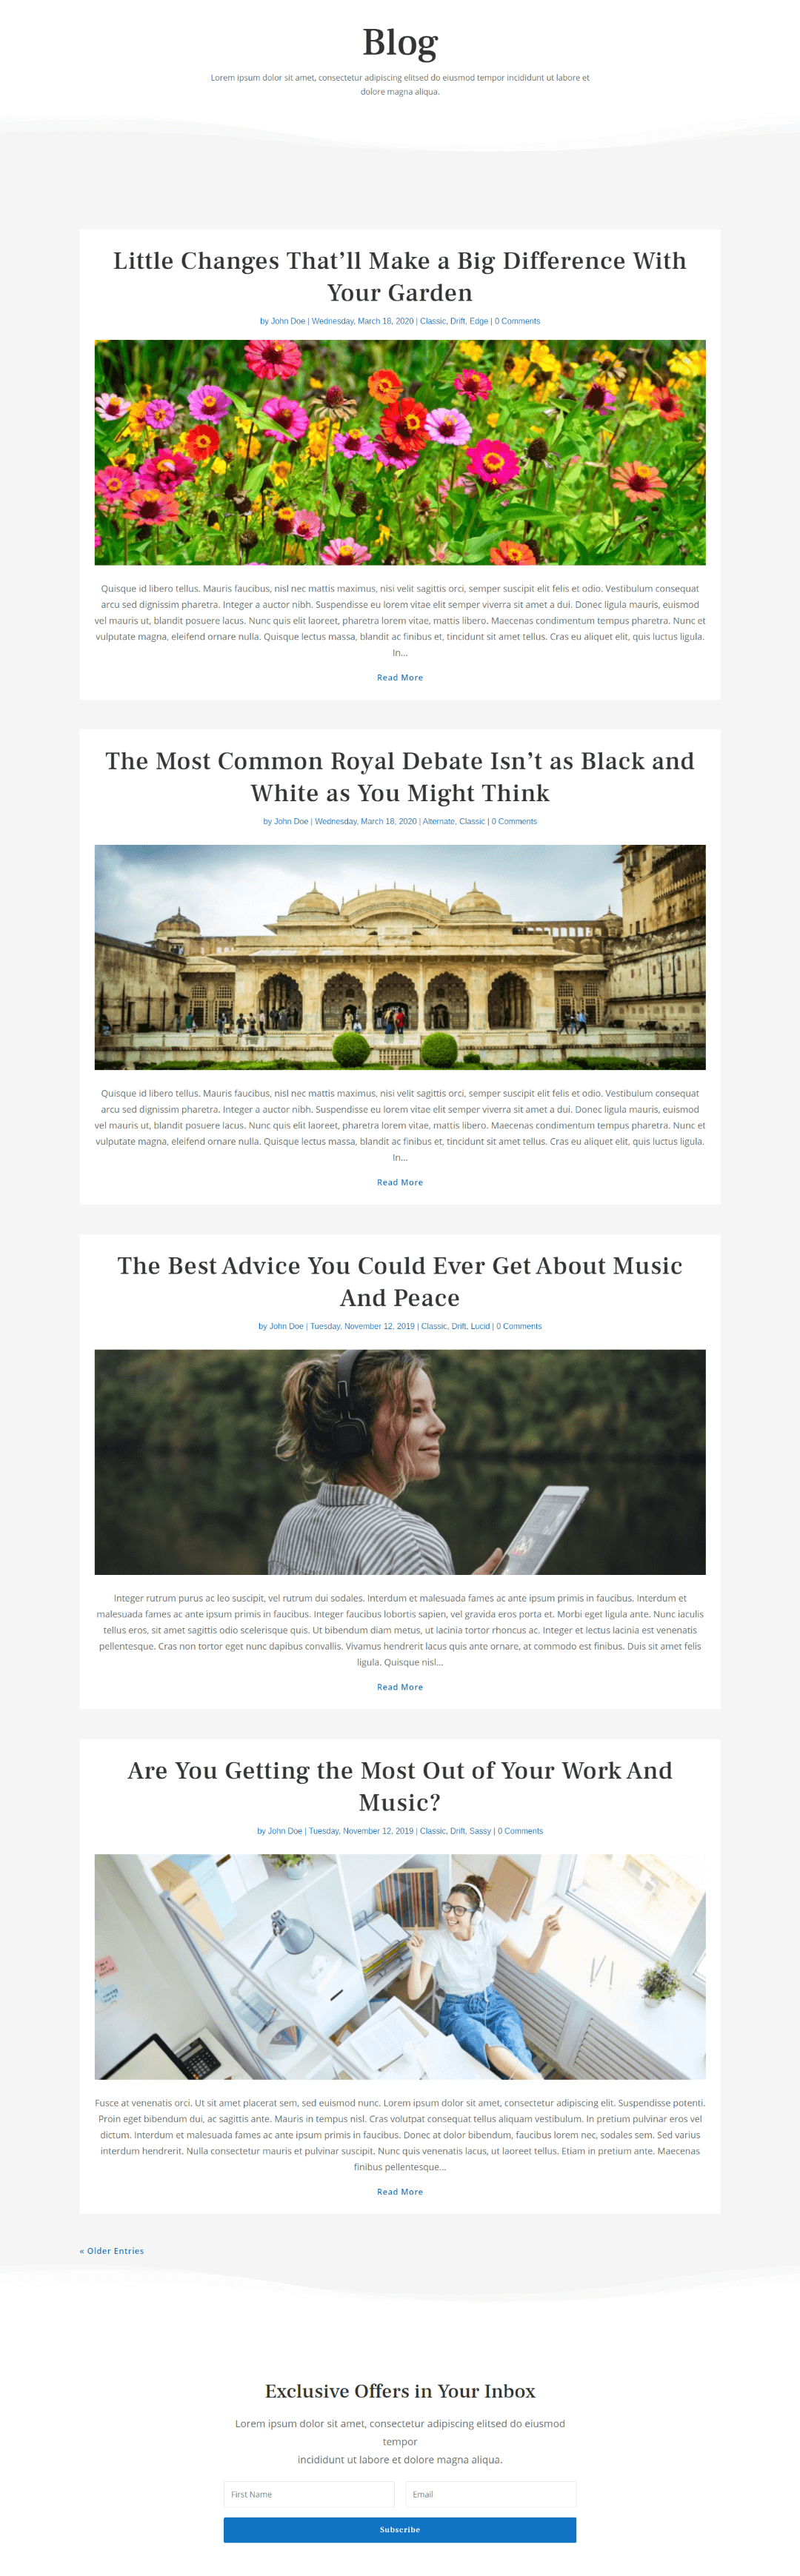 Classic Divi Blog Page Layout